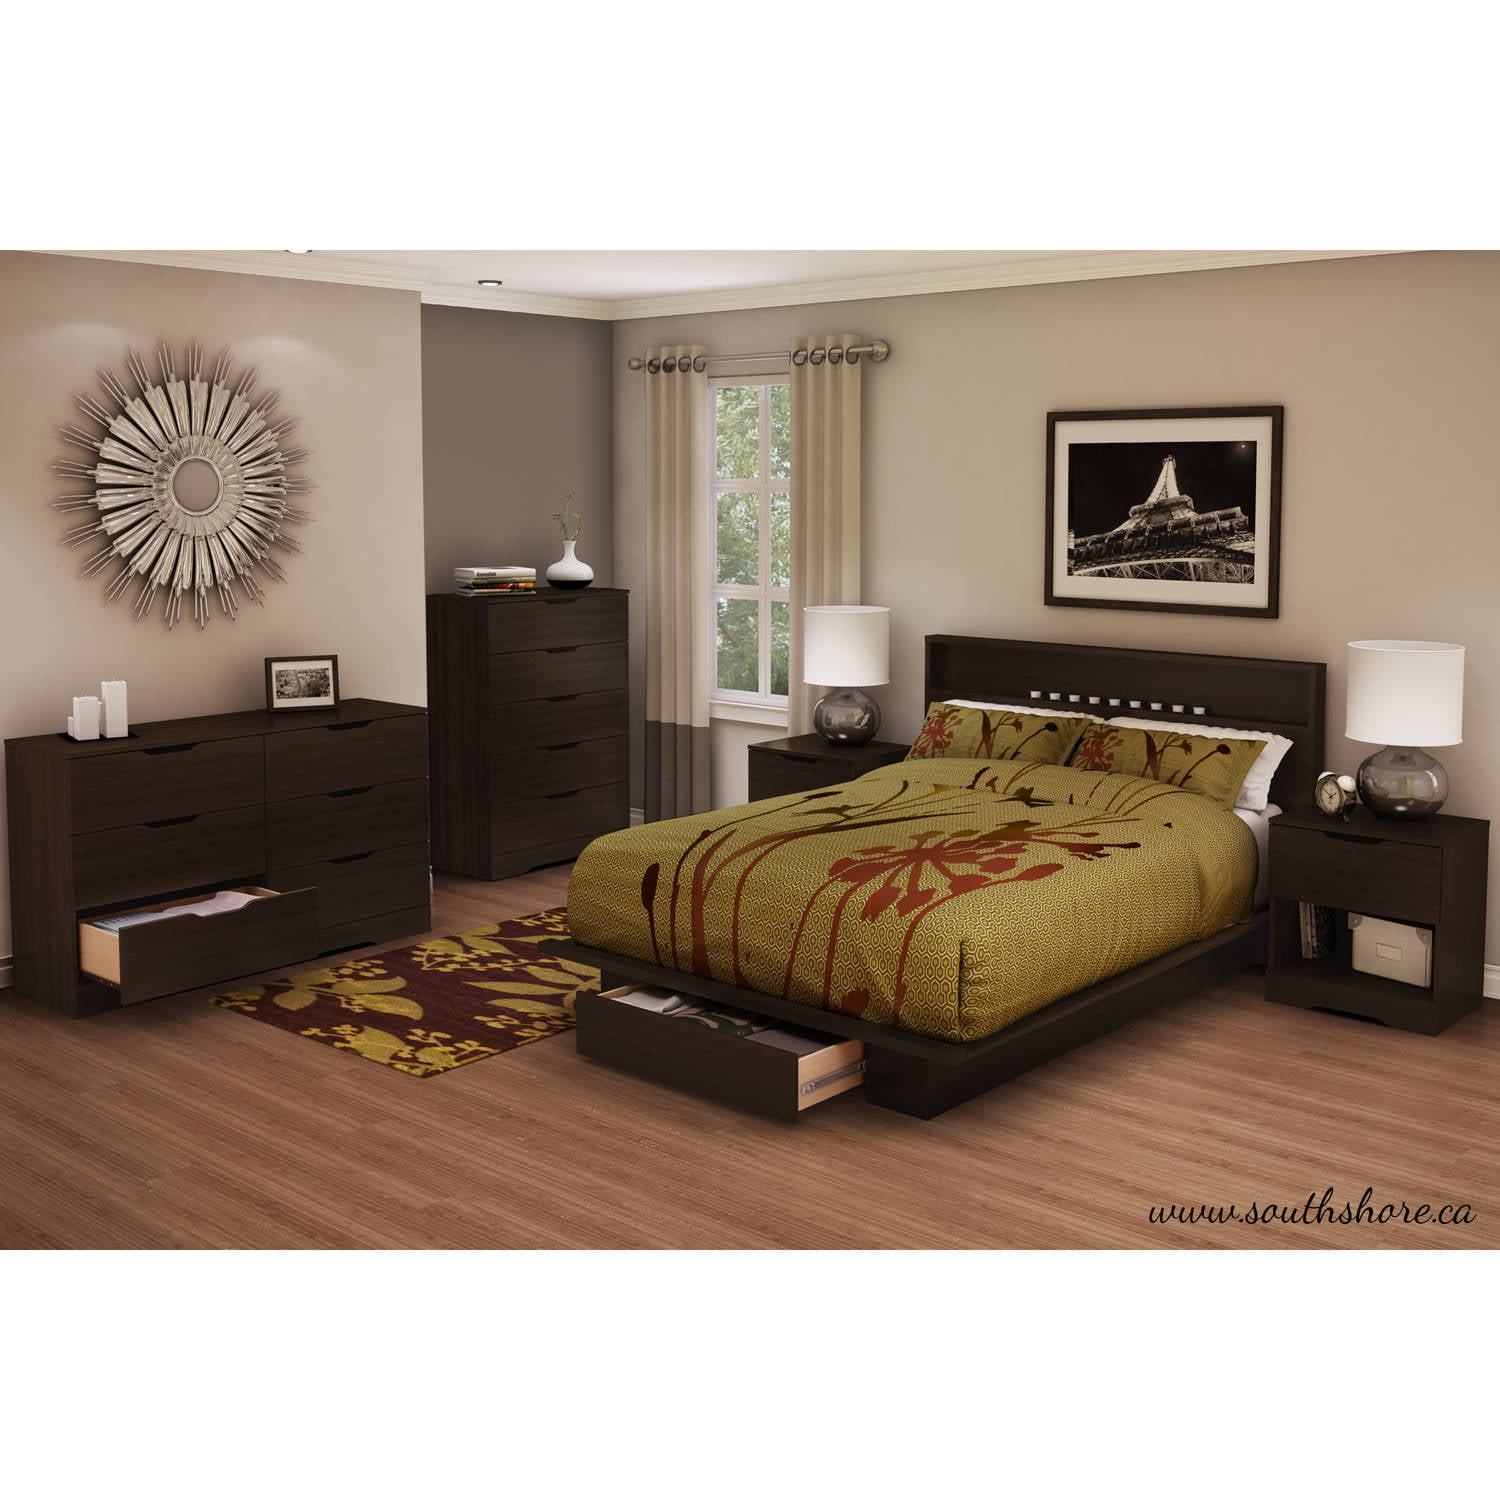 south shore holland fullqueen platform bed with drawer multiple finishes walmartcom